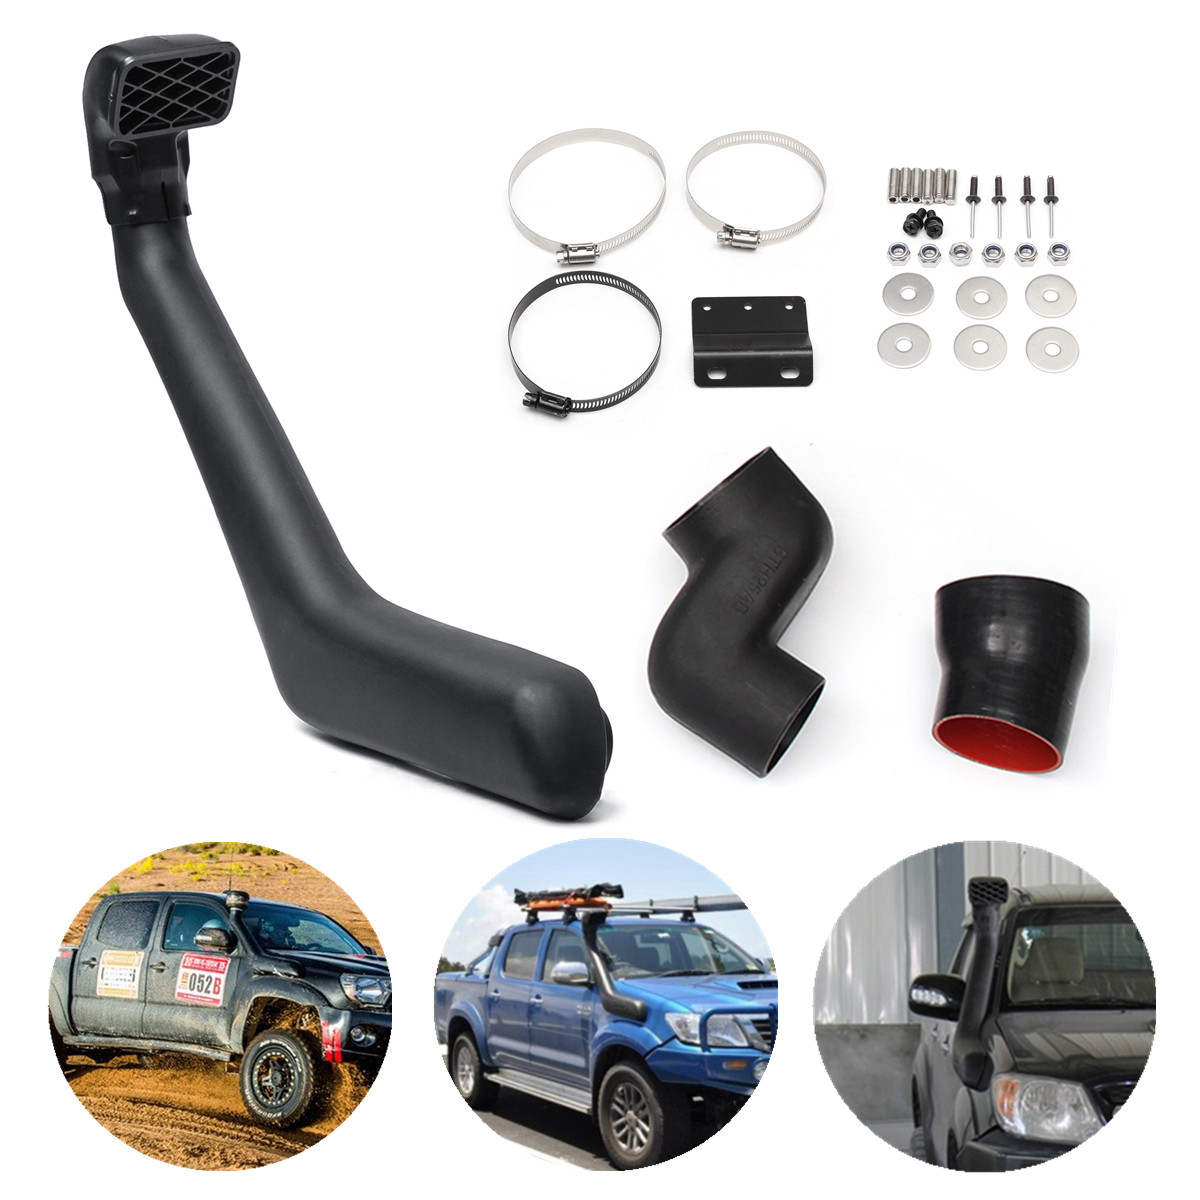 for Toyota for Hilux 25/26 SR/5 2005-2014 Snorkel Kit Petrol Diesel Air Raise Intake Drainage Outlets Increase Fuel Economy Life